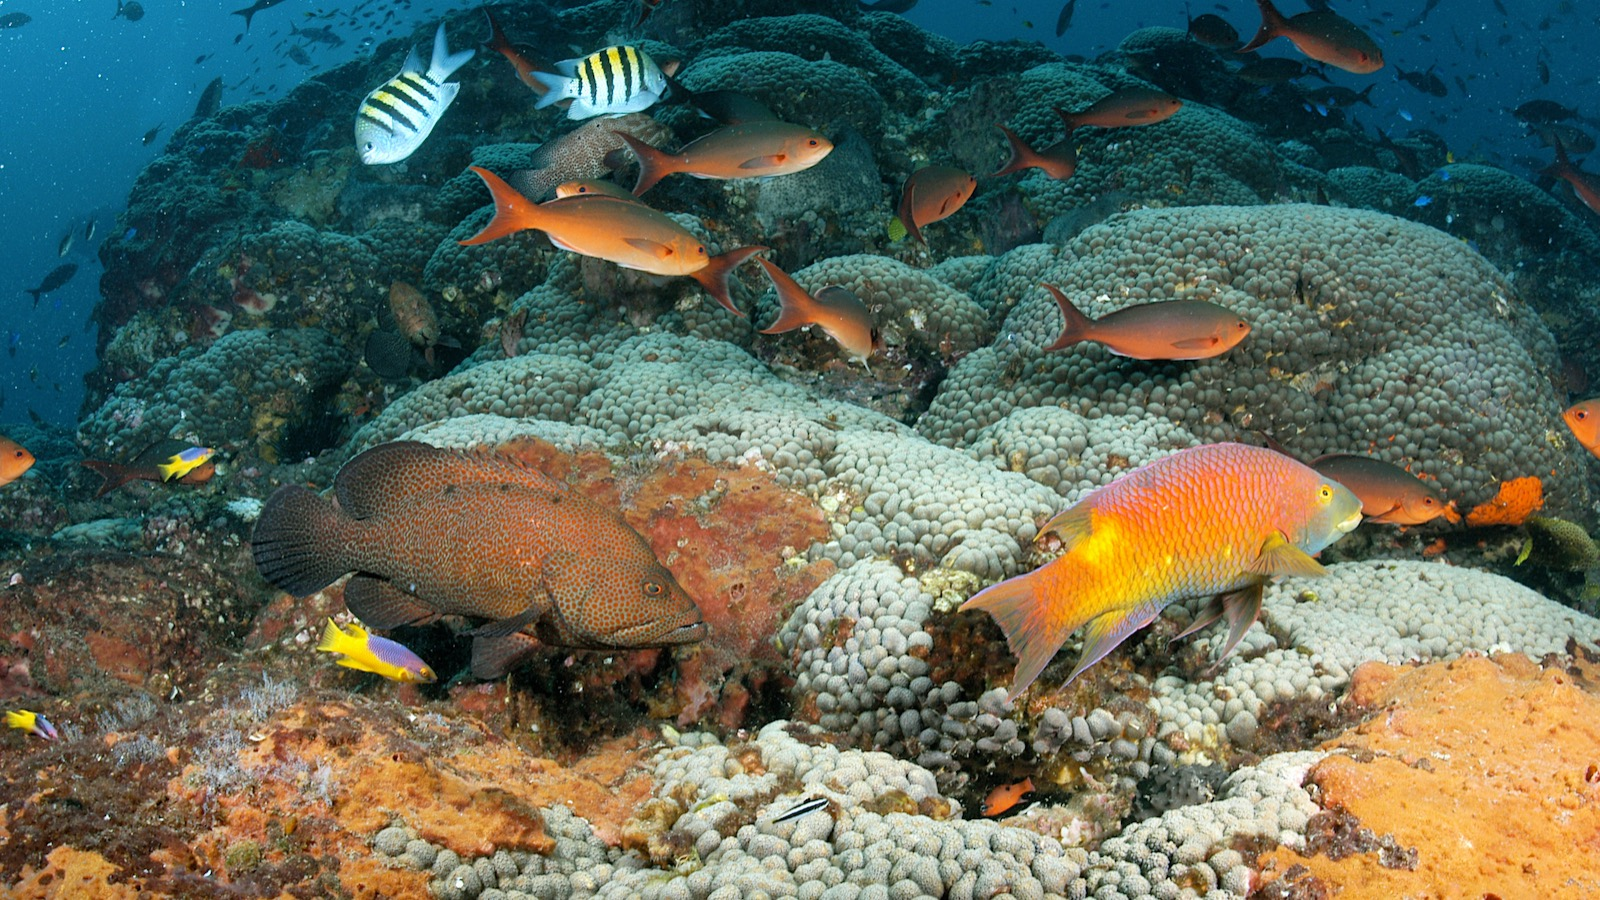 Fish over a vibrant coral reef